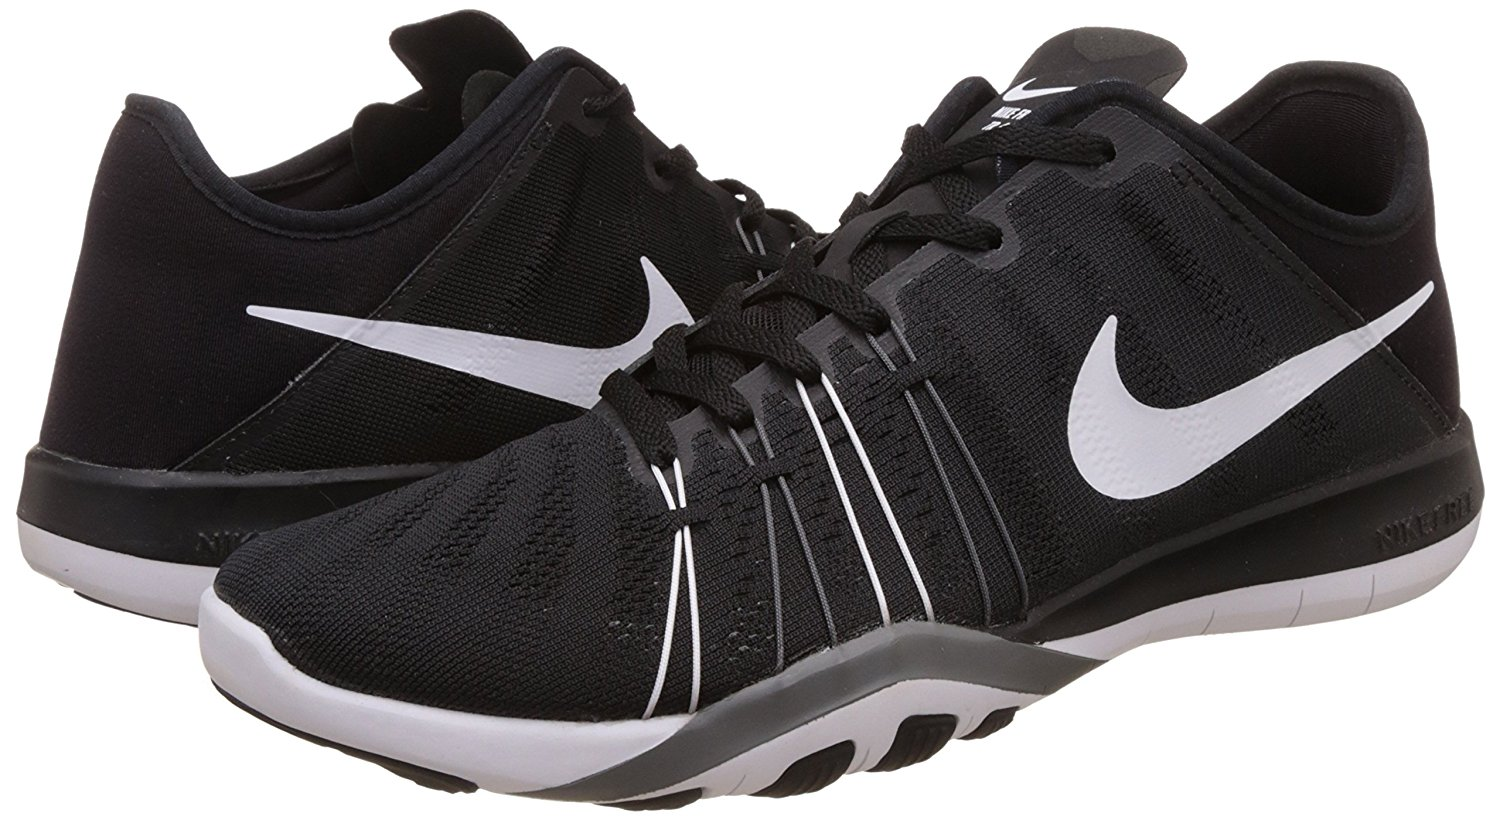 Details about Nike Womens Free Tr 6 Training Shoe Black Cool Grey White  833413-001 0b238c6d0